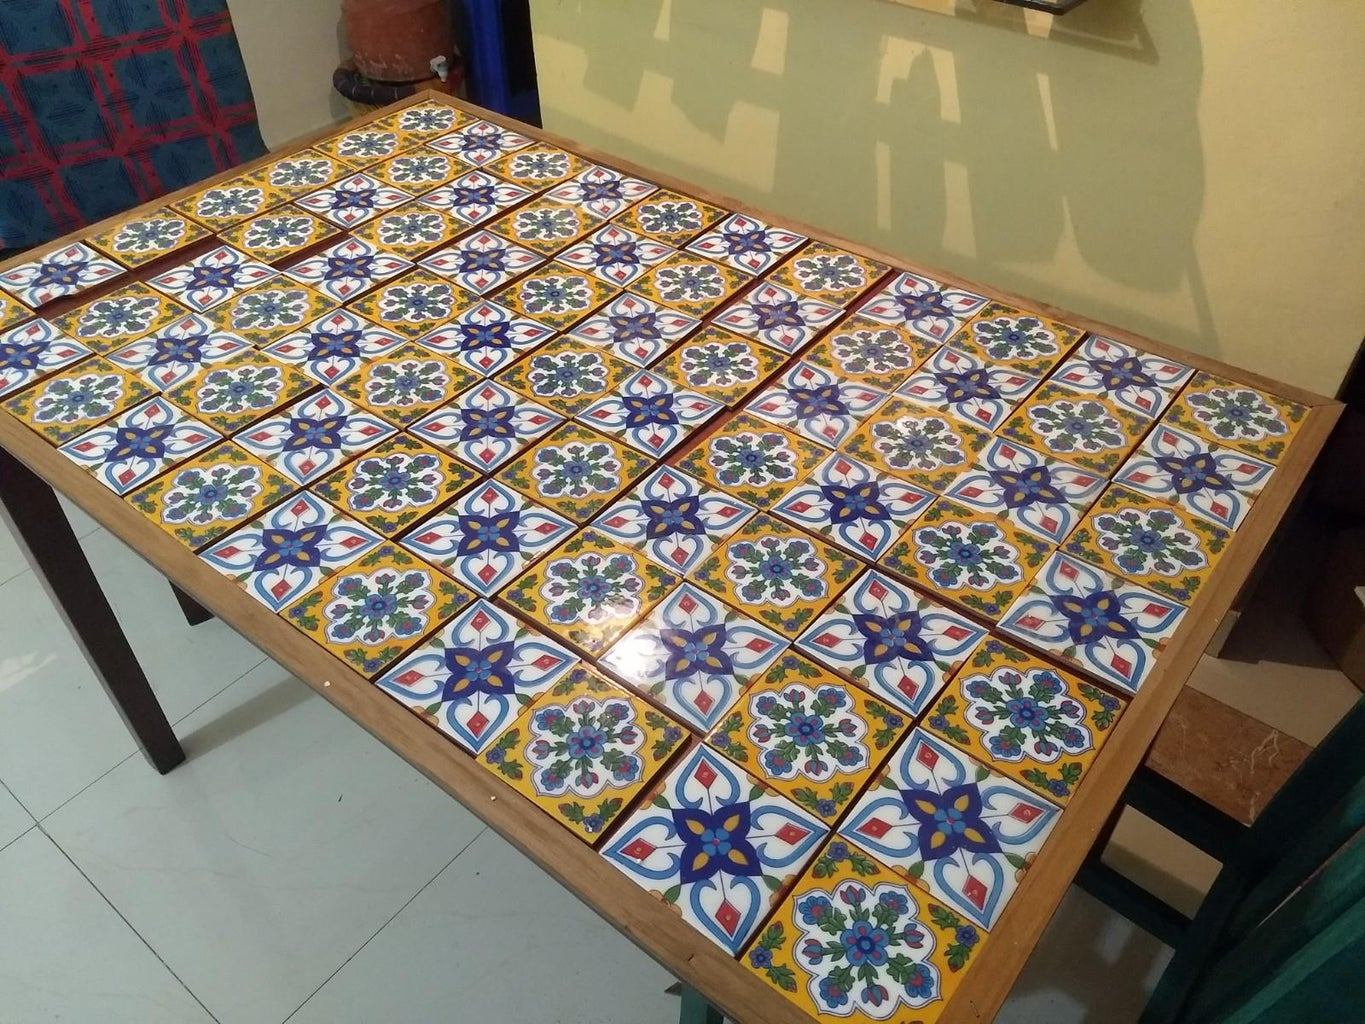 Lay the Tiles